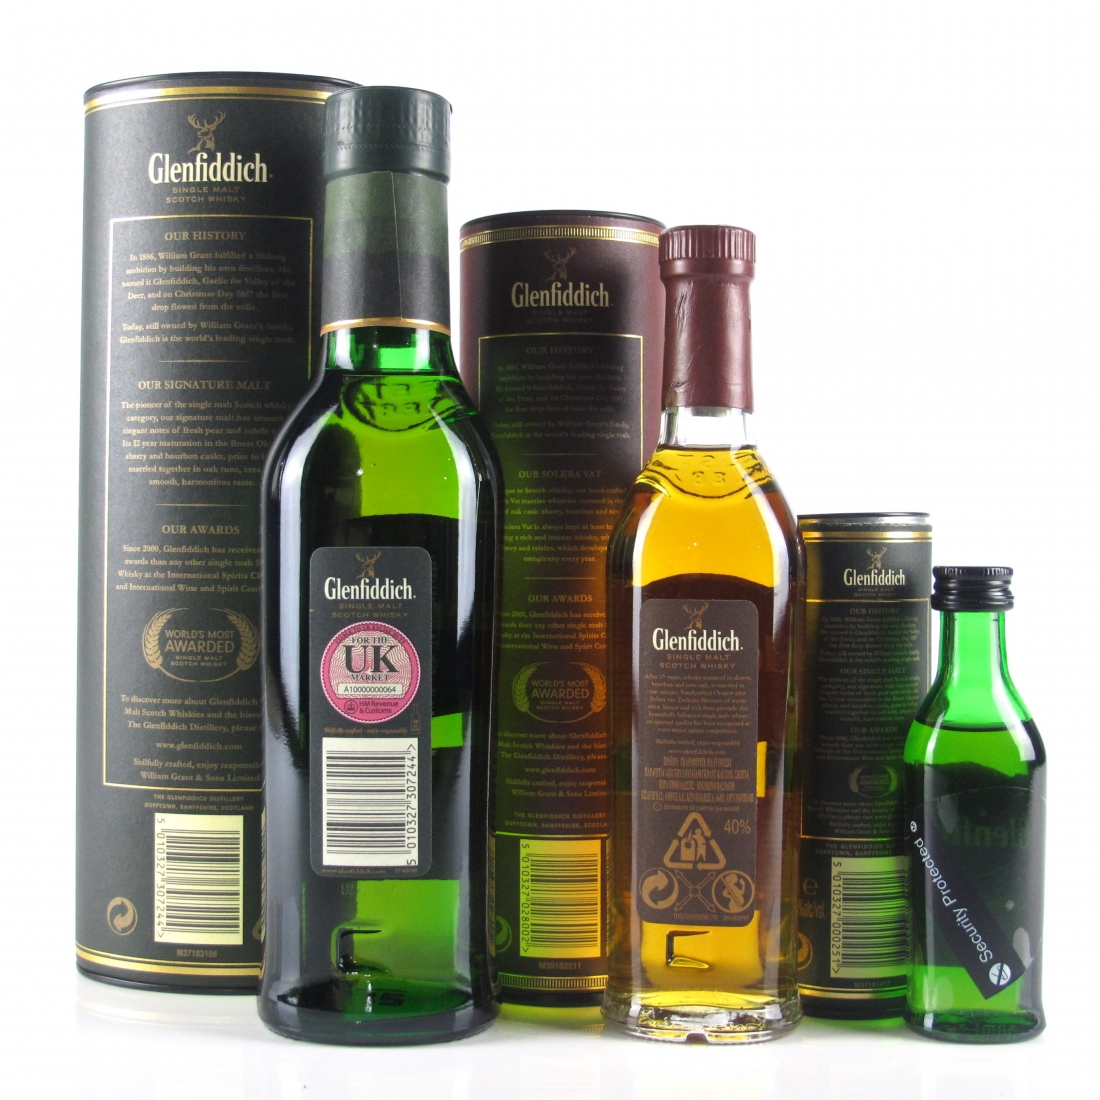 Glenfiddich 12 Year Old 35cl & 5cl and 15 Year Old 20cl